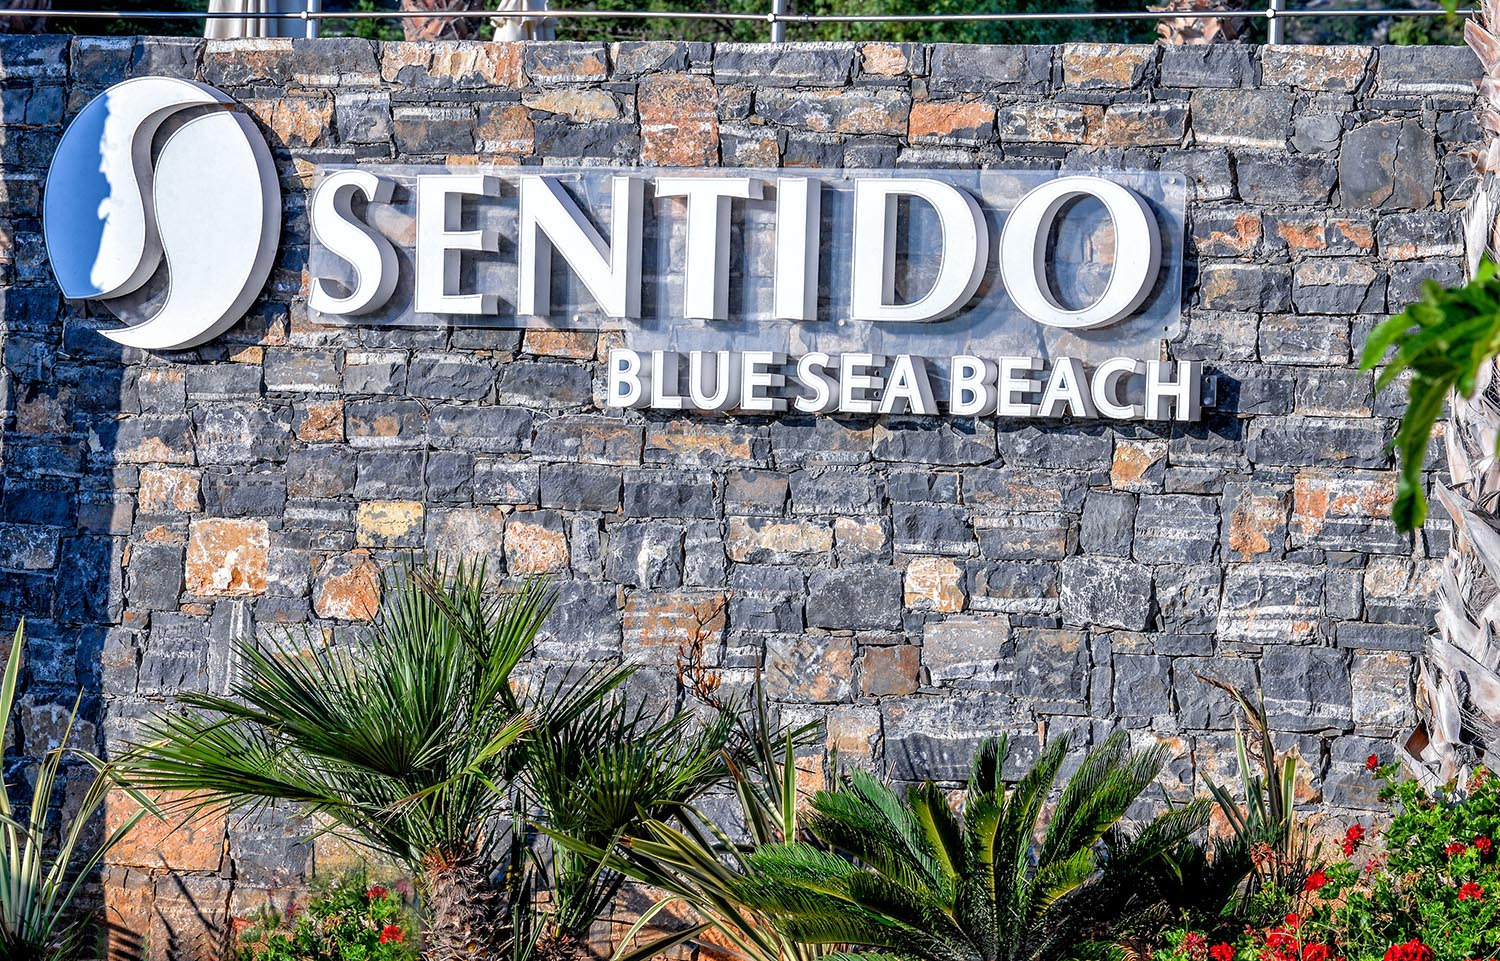 Blue Sea Beach (ex. Sentido Blue Sea Beach Resort)